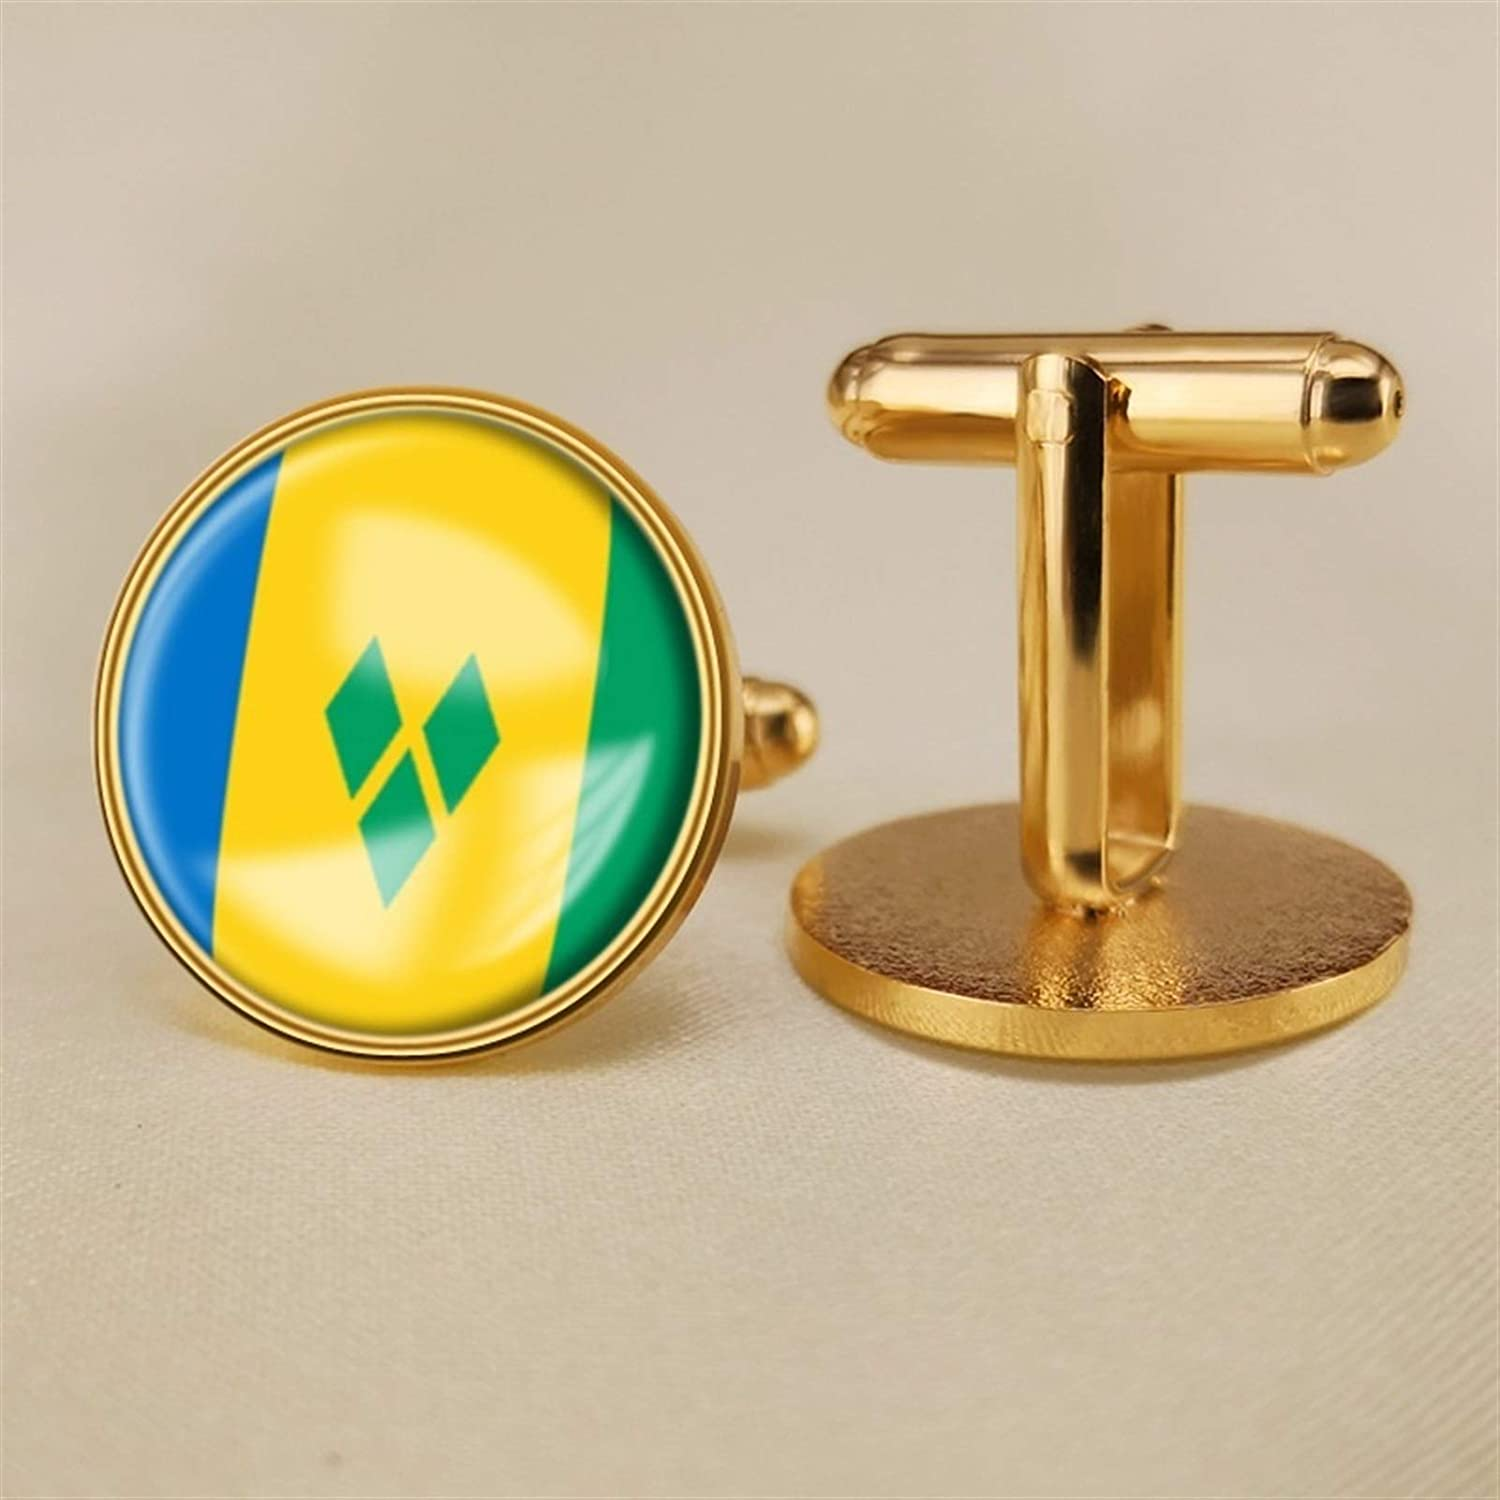 YYOBK Boys' Cuff Links,Men's Cuff Links,Shirt Studs,Sports Fan Cuff Links,Saint Vincent and The Grenadines Flag Cufflinks,Round Cufflinks, Copper 19mm (Color : Gold, Size : 19mm)